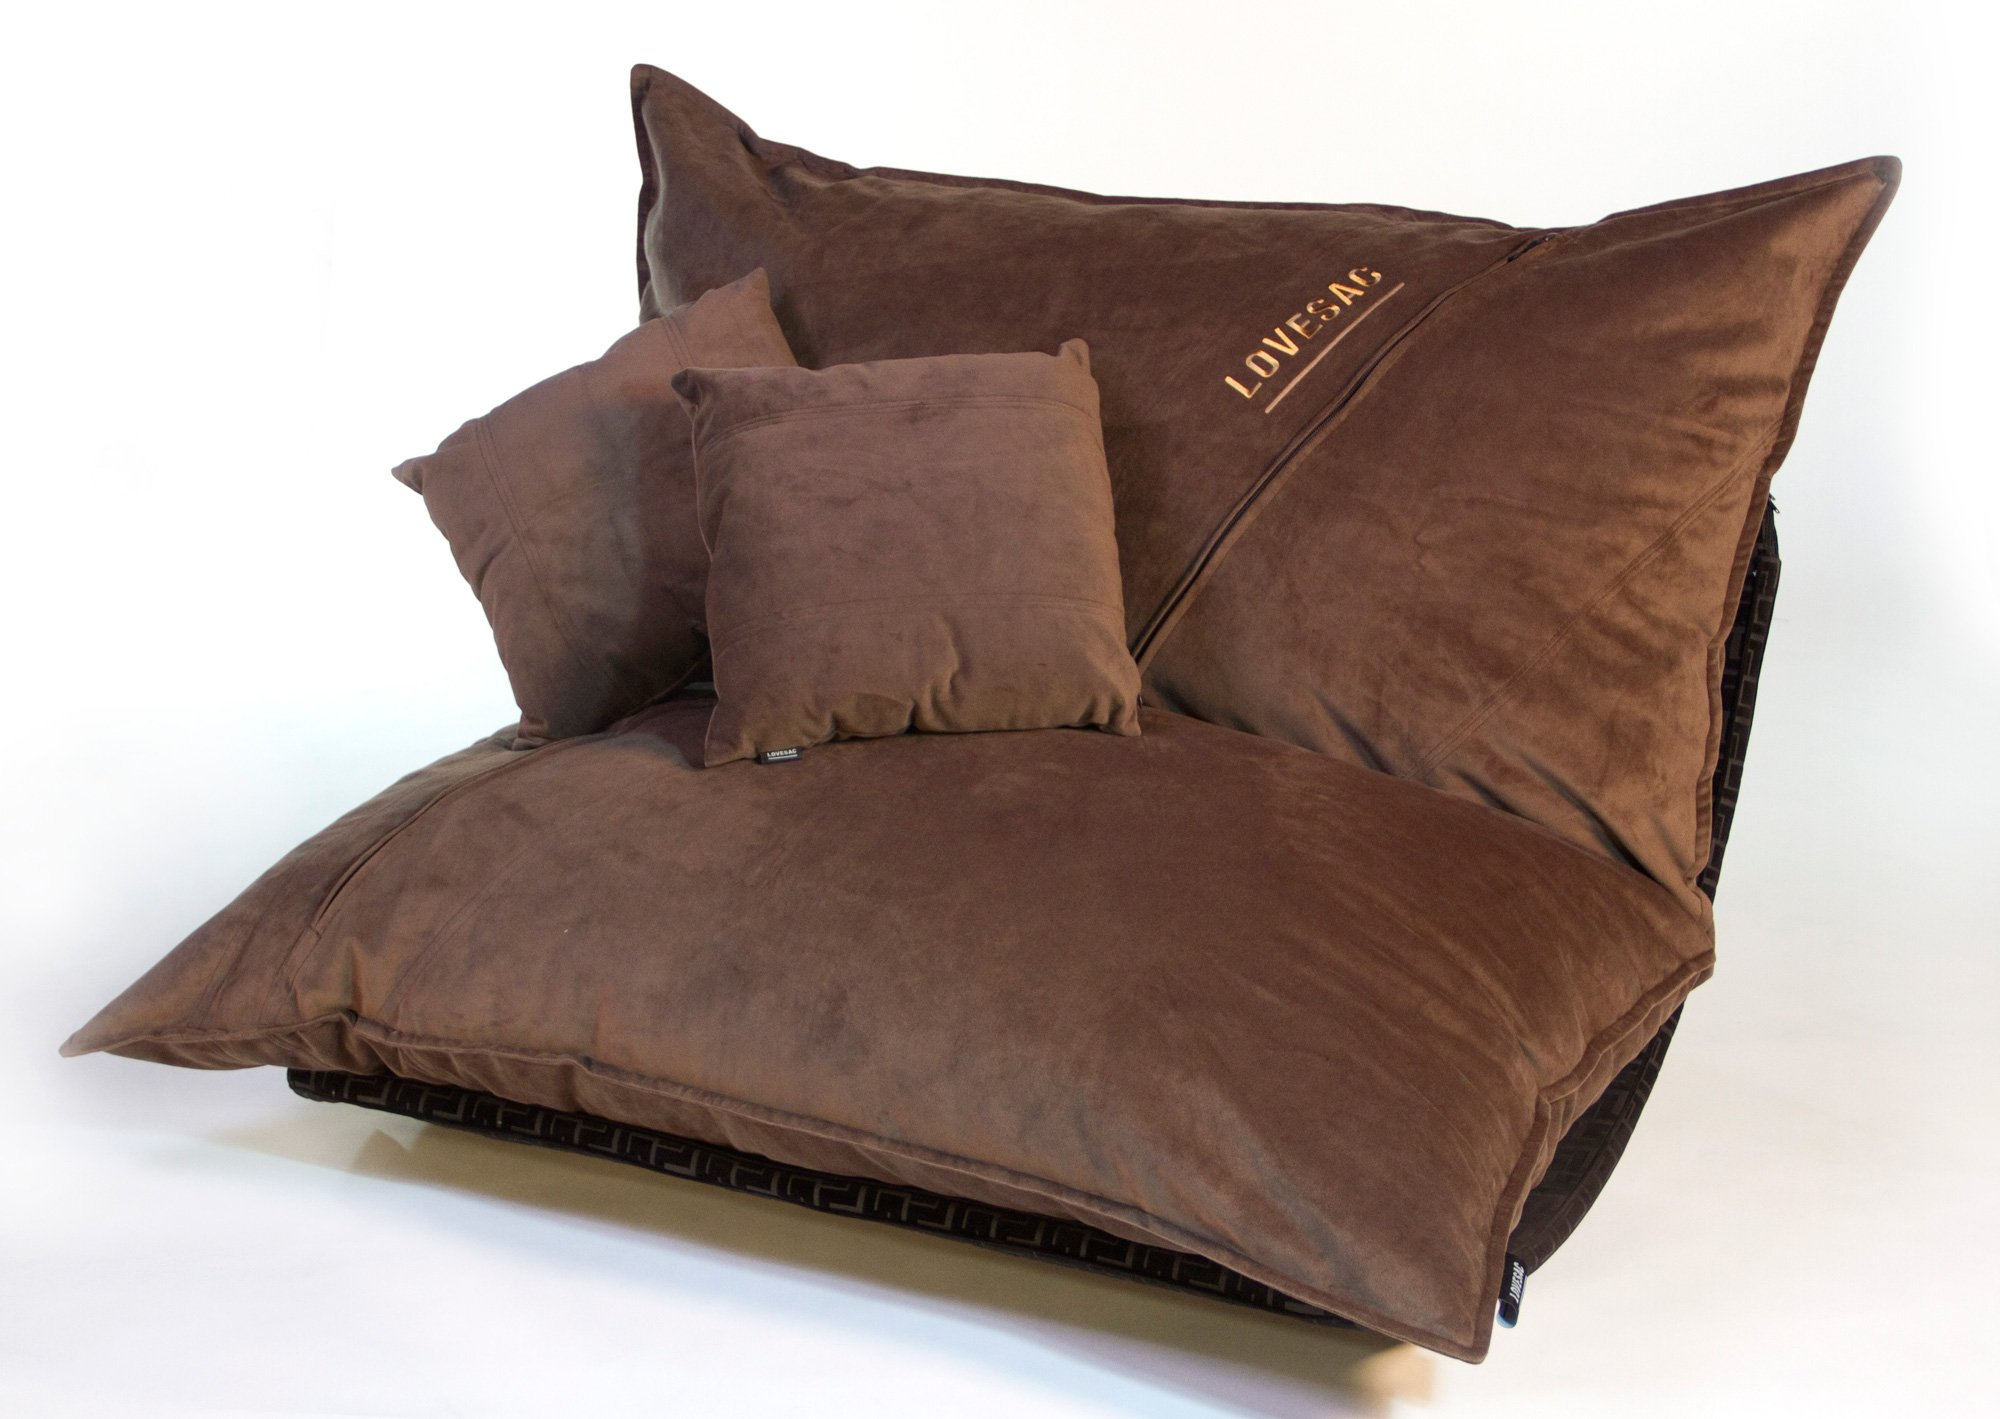 pillows for chairs folding bamboo coffee velvish pillowsac package original oversized sac